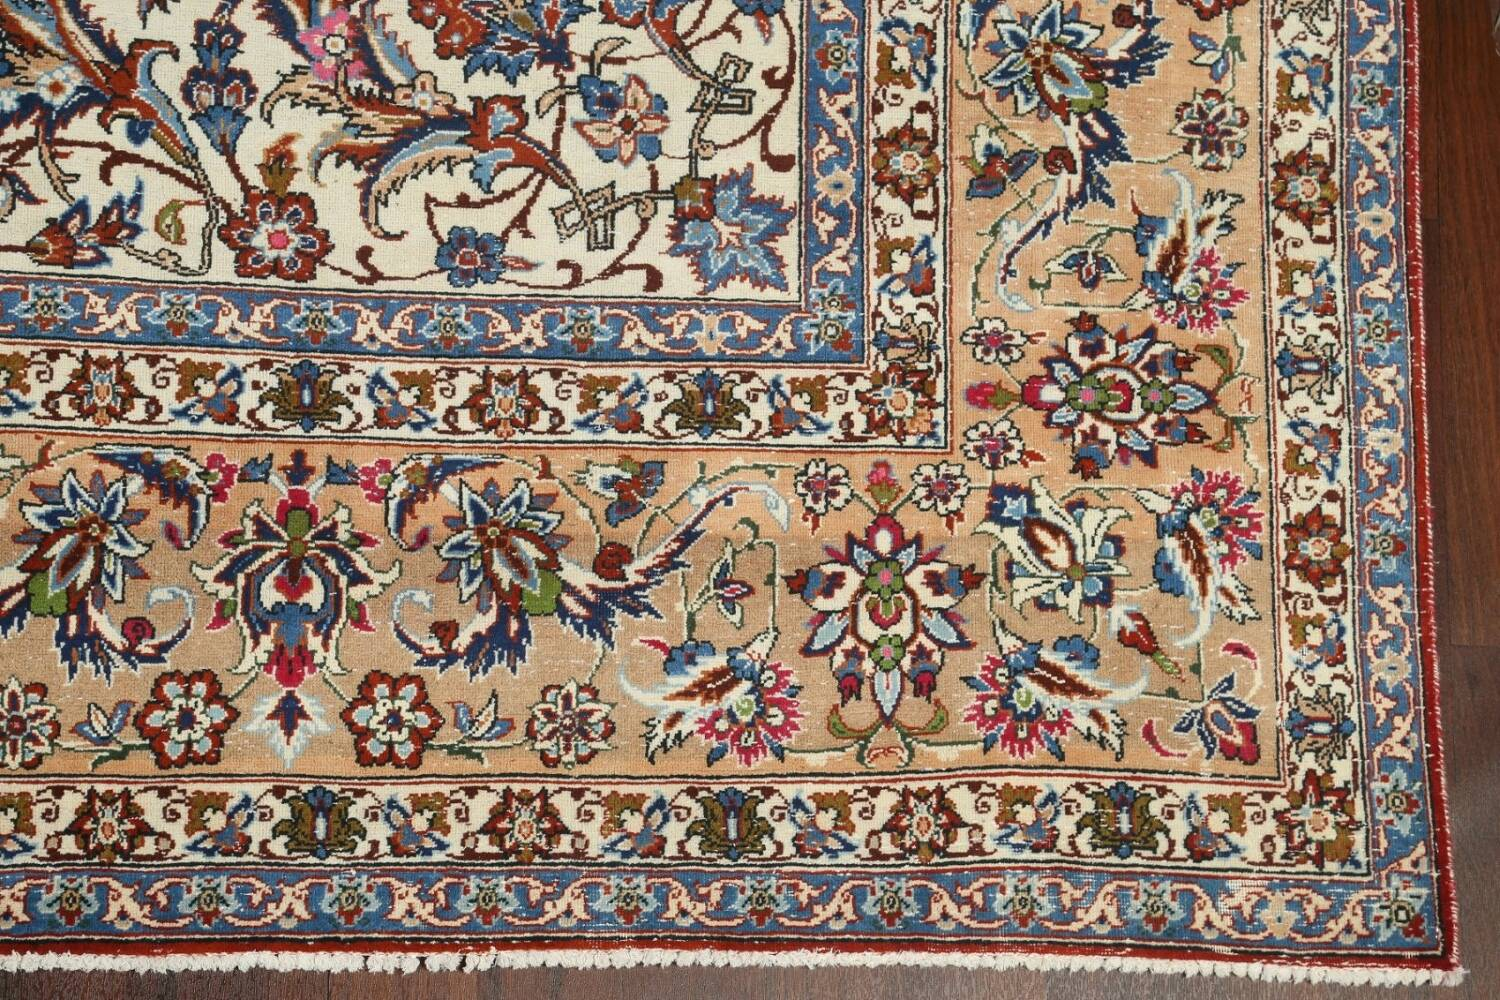 Antique Wool Oversized Isfahan Persian Rug 10x17 image 6